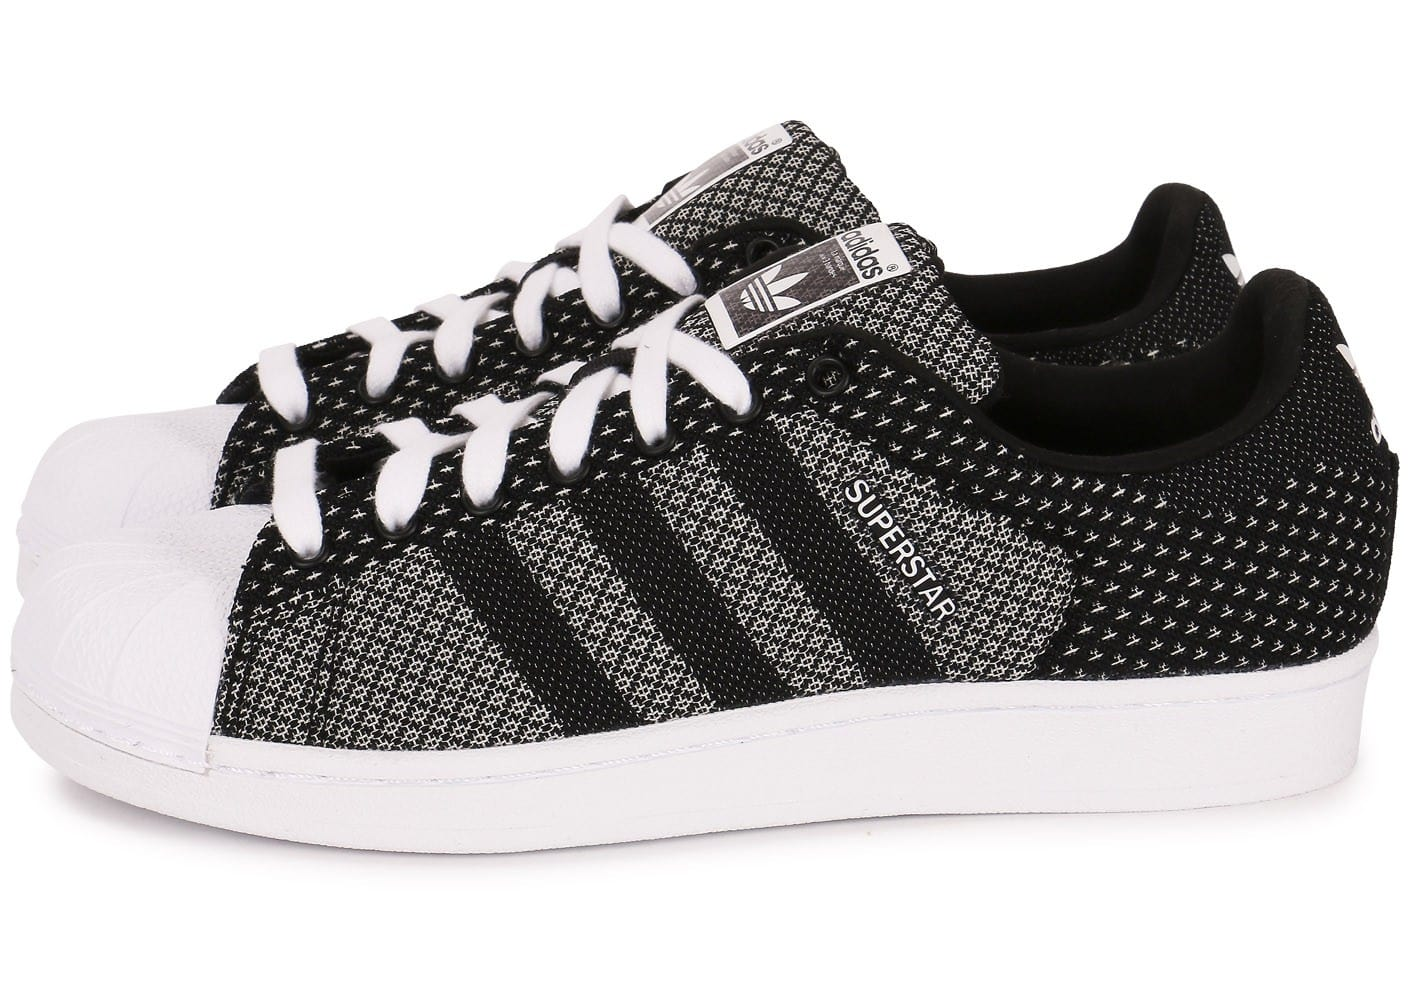 adidas superstar toile homme